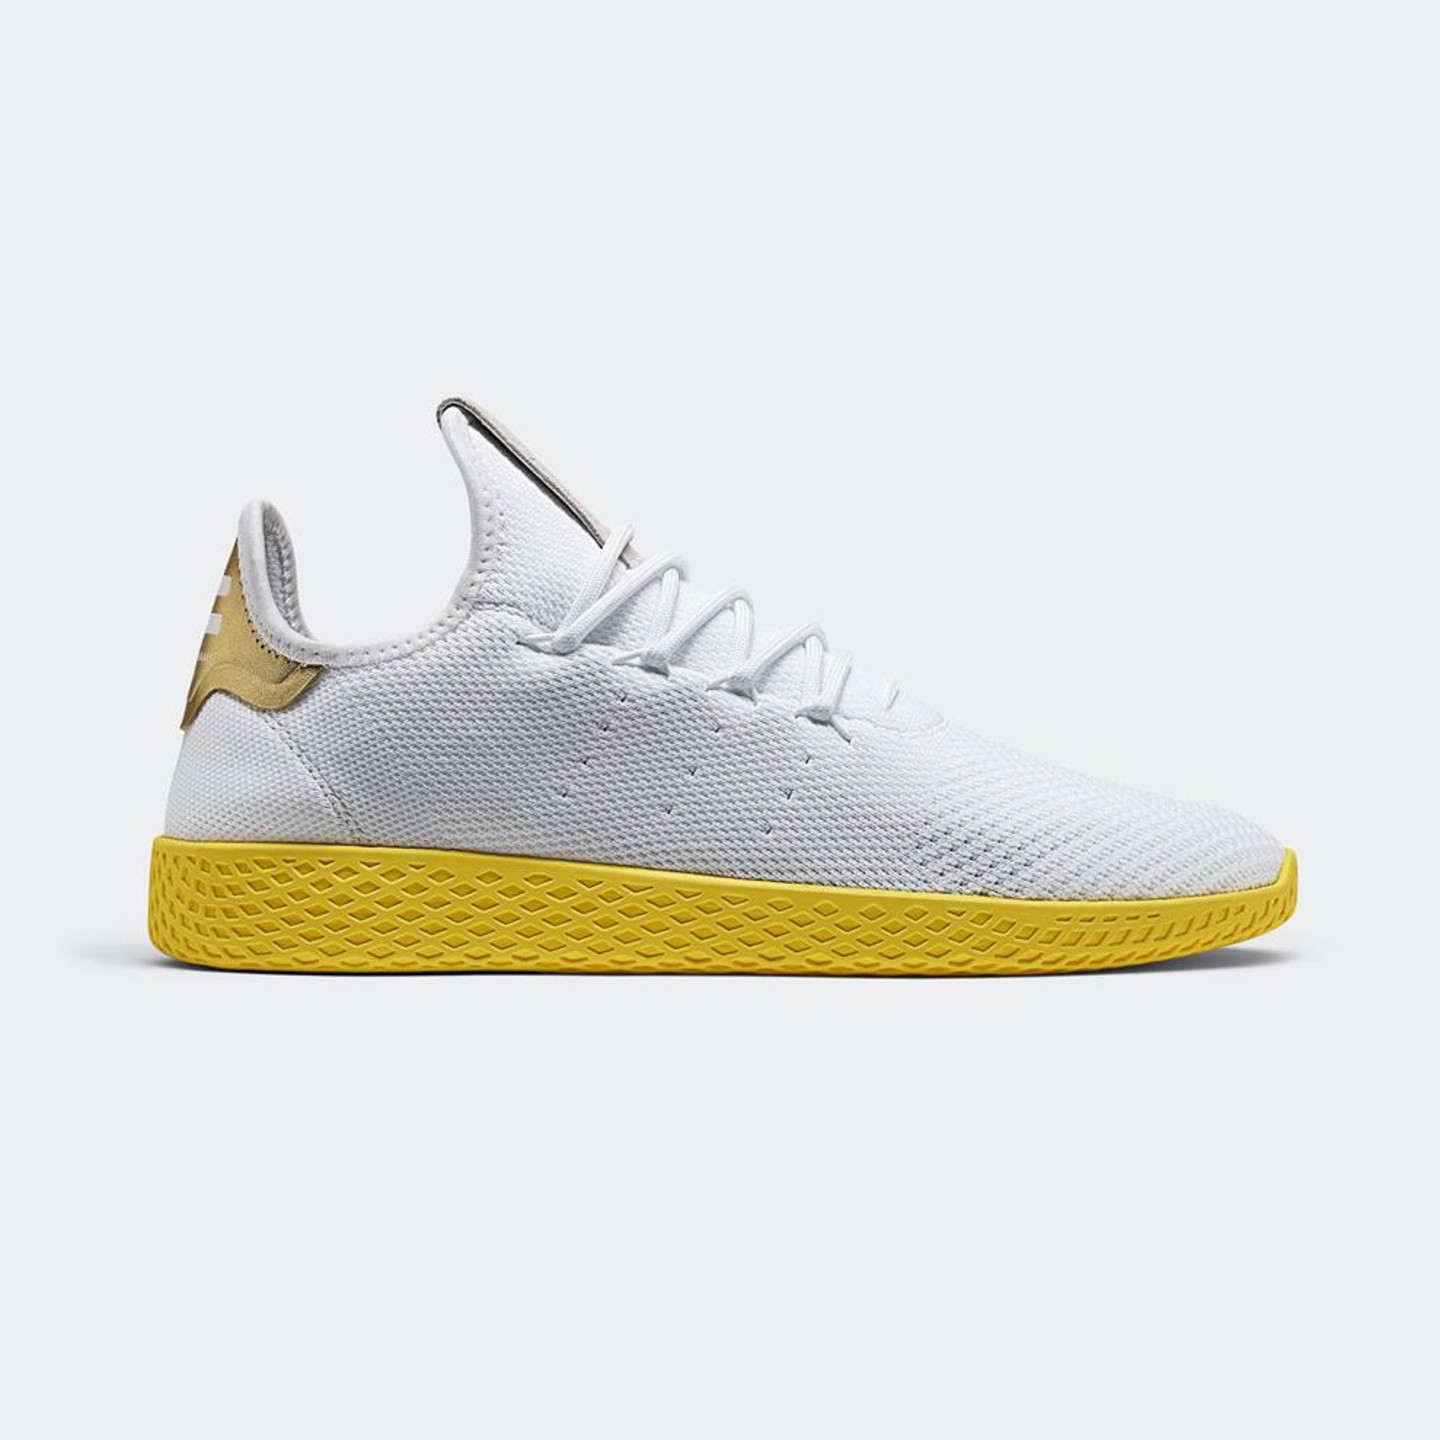 huge selection of d1854 c6da6 Adidas PW Tennis HU Ftwwht  Yellow  Gold BY2674-42